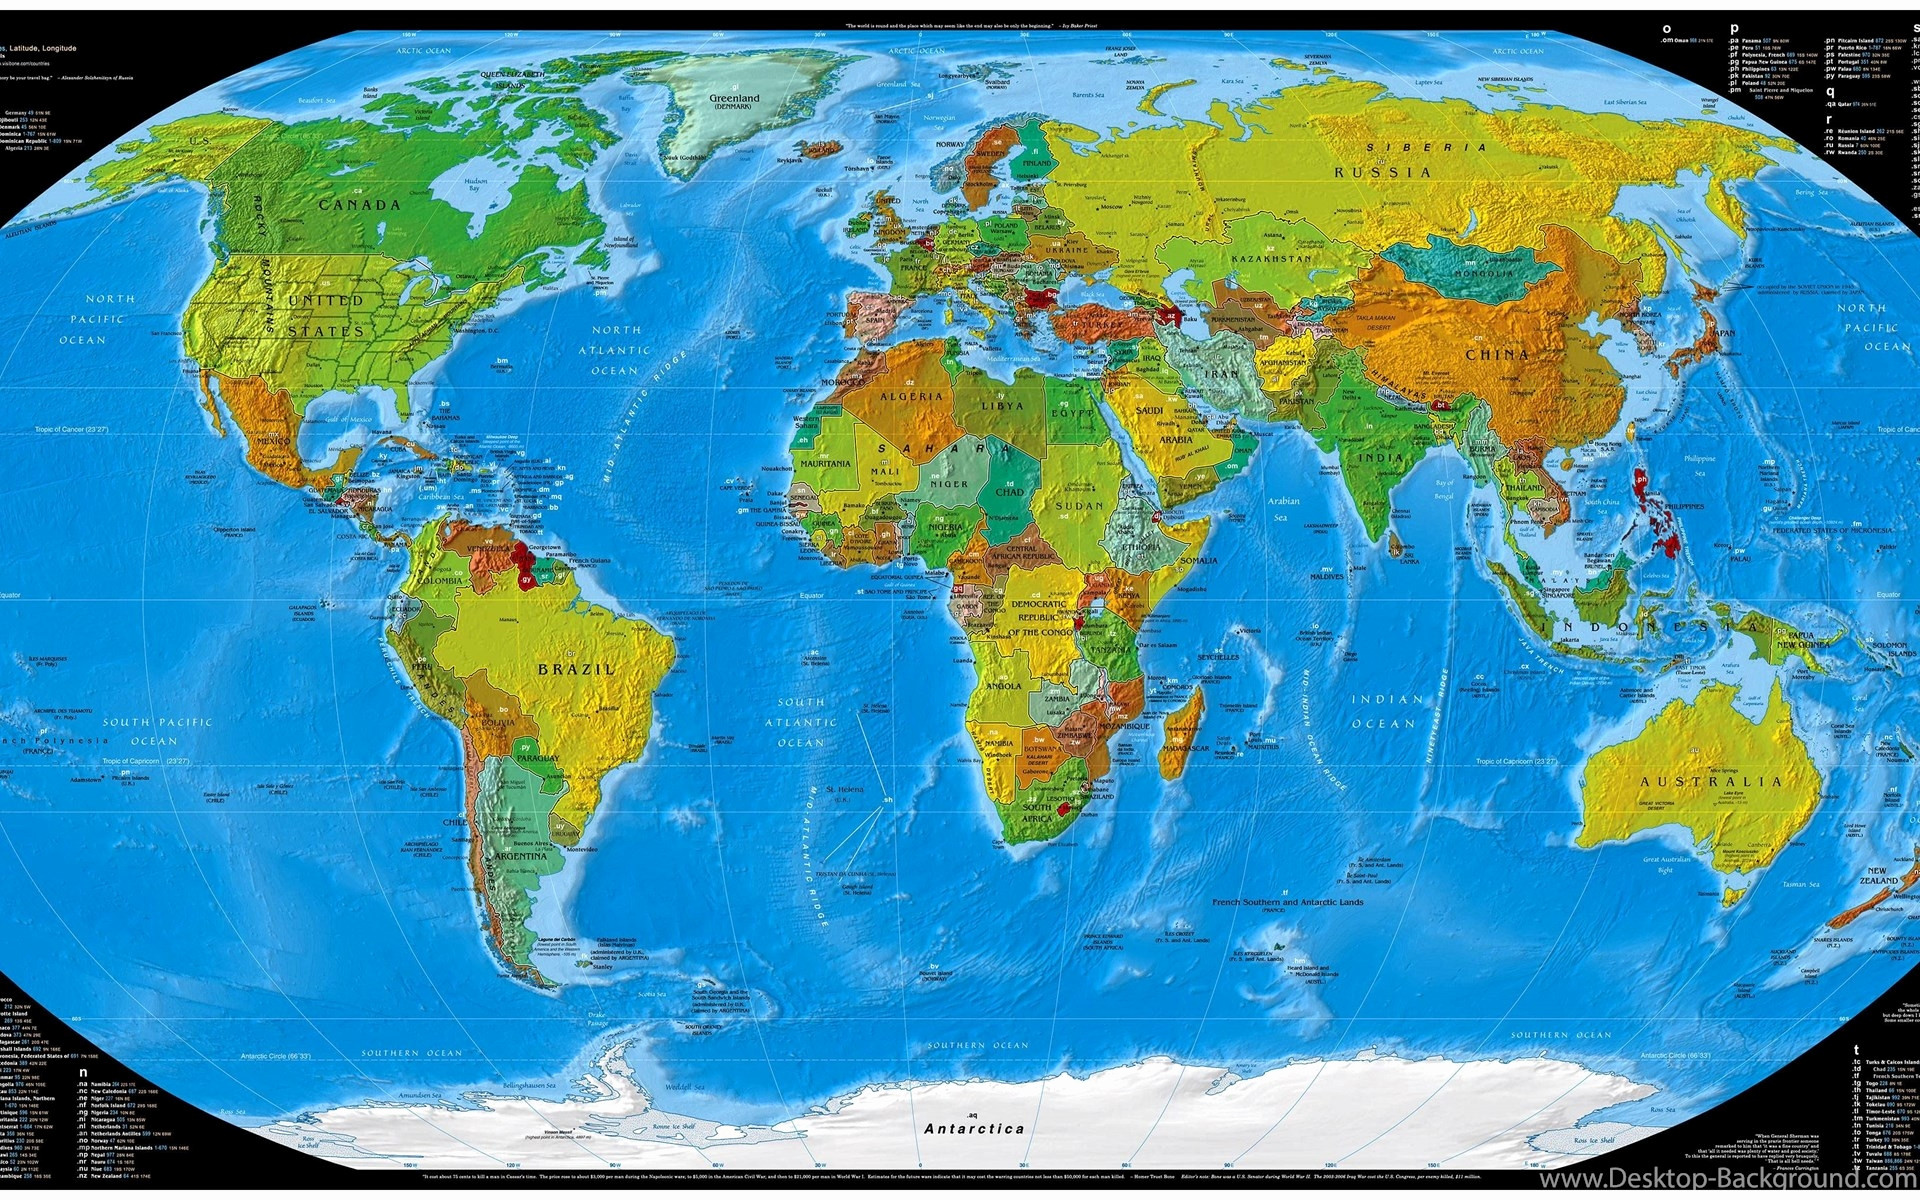 Us map wallpapers 66 background pictures 1920x1080 world map wallpaper in malaysia copy maps wallpapers group with 29 items gumiabroncs Choice Image